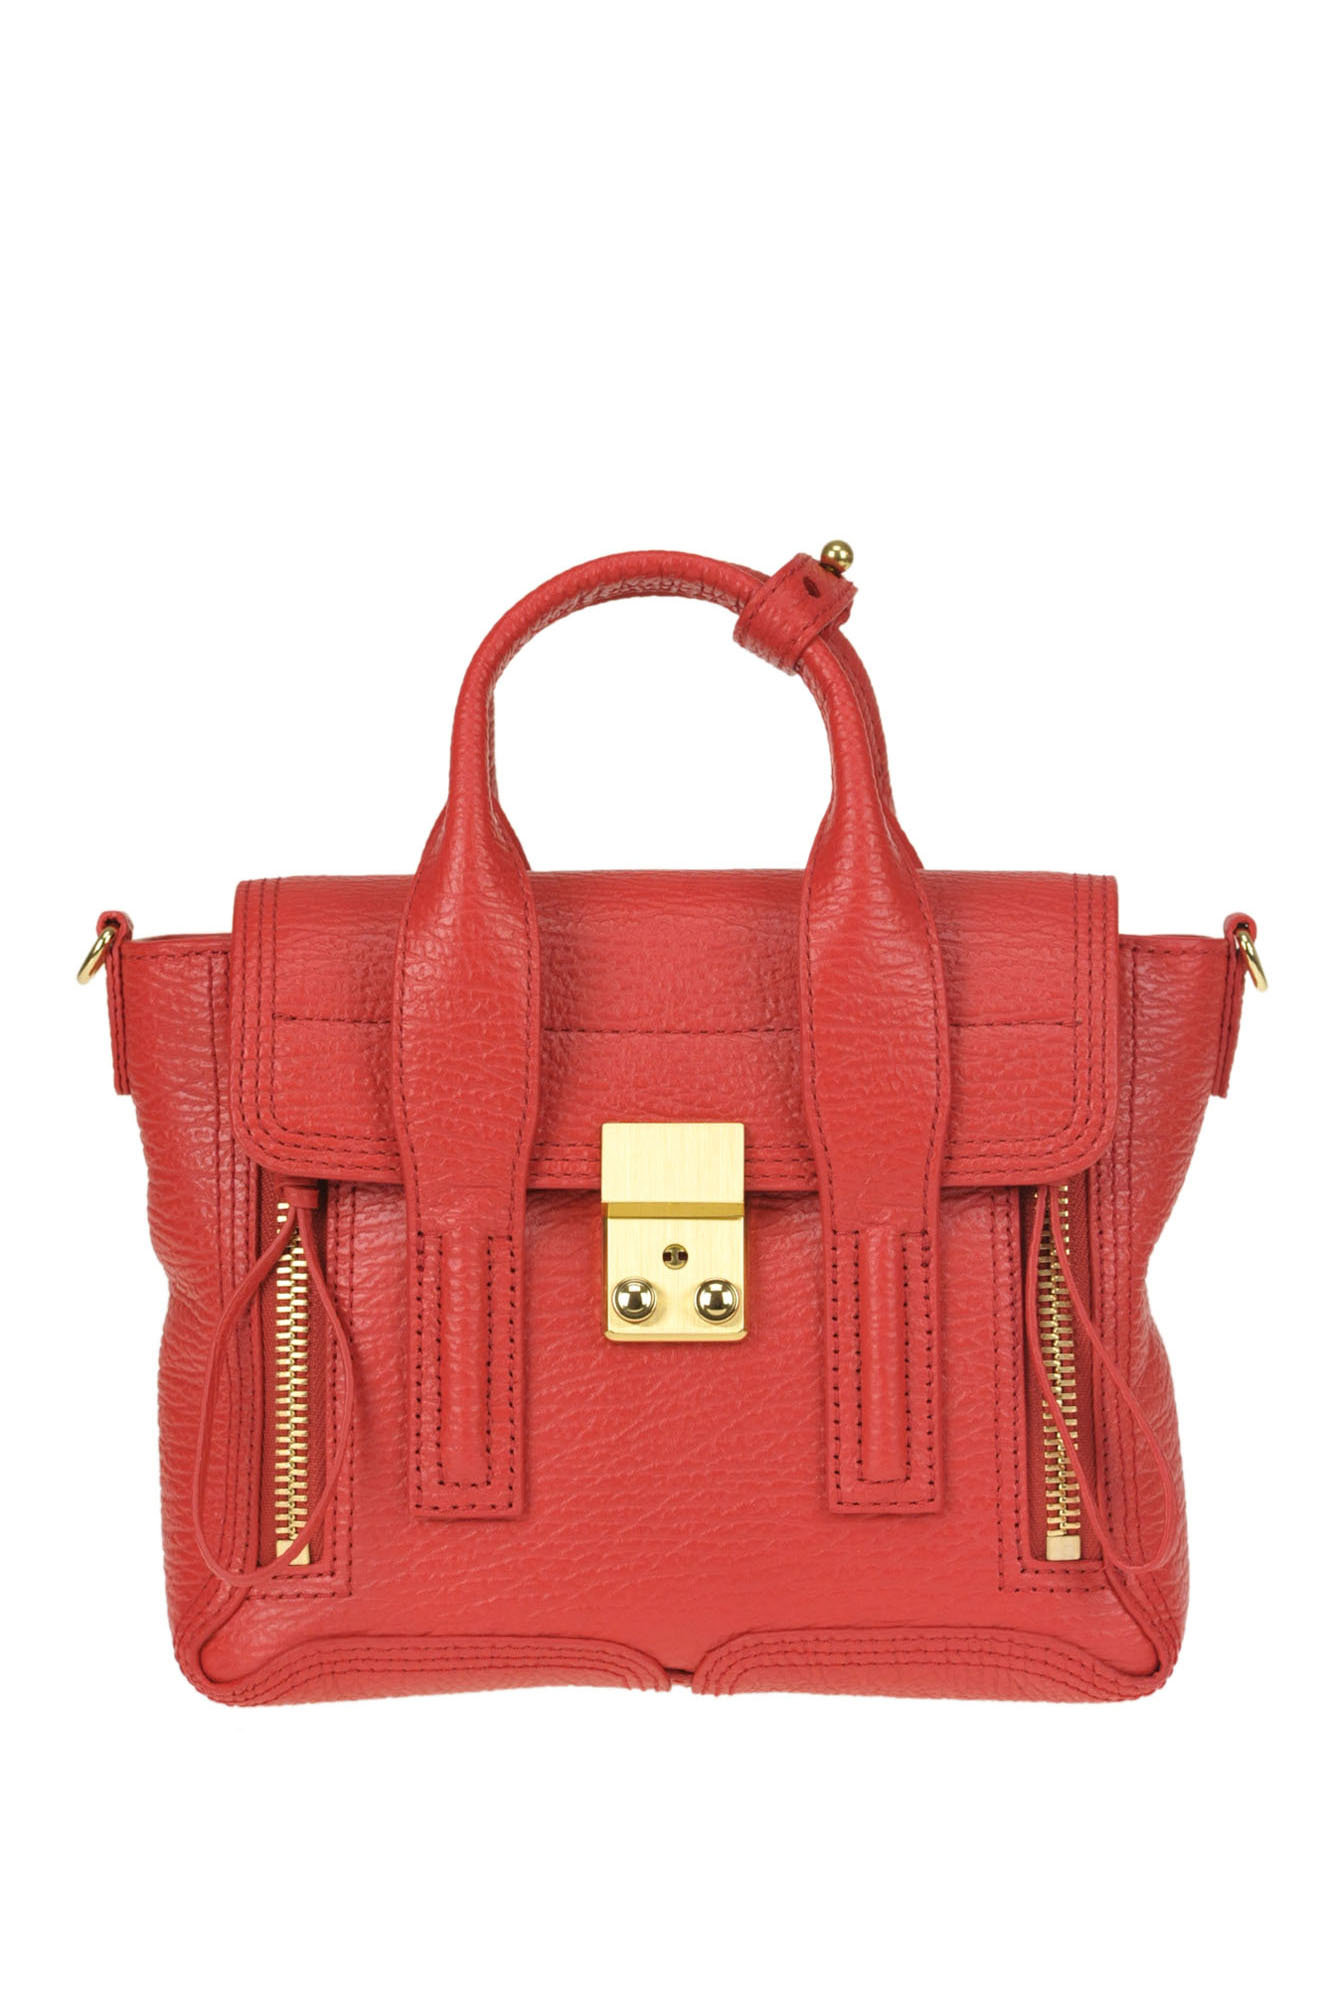 3.1 Phillip Lim  Pashli  Mini Satchel Bag In Red  199465b77